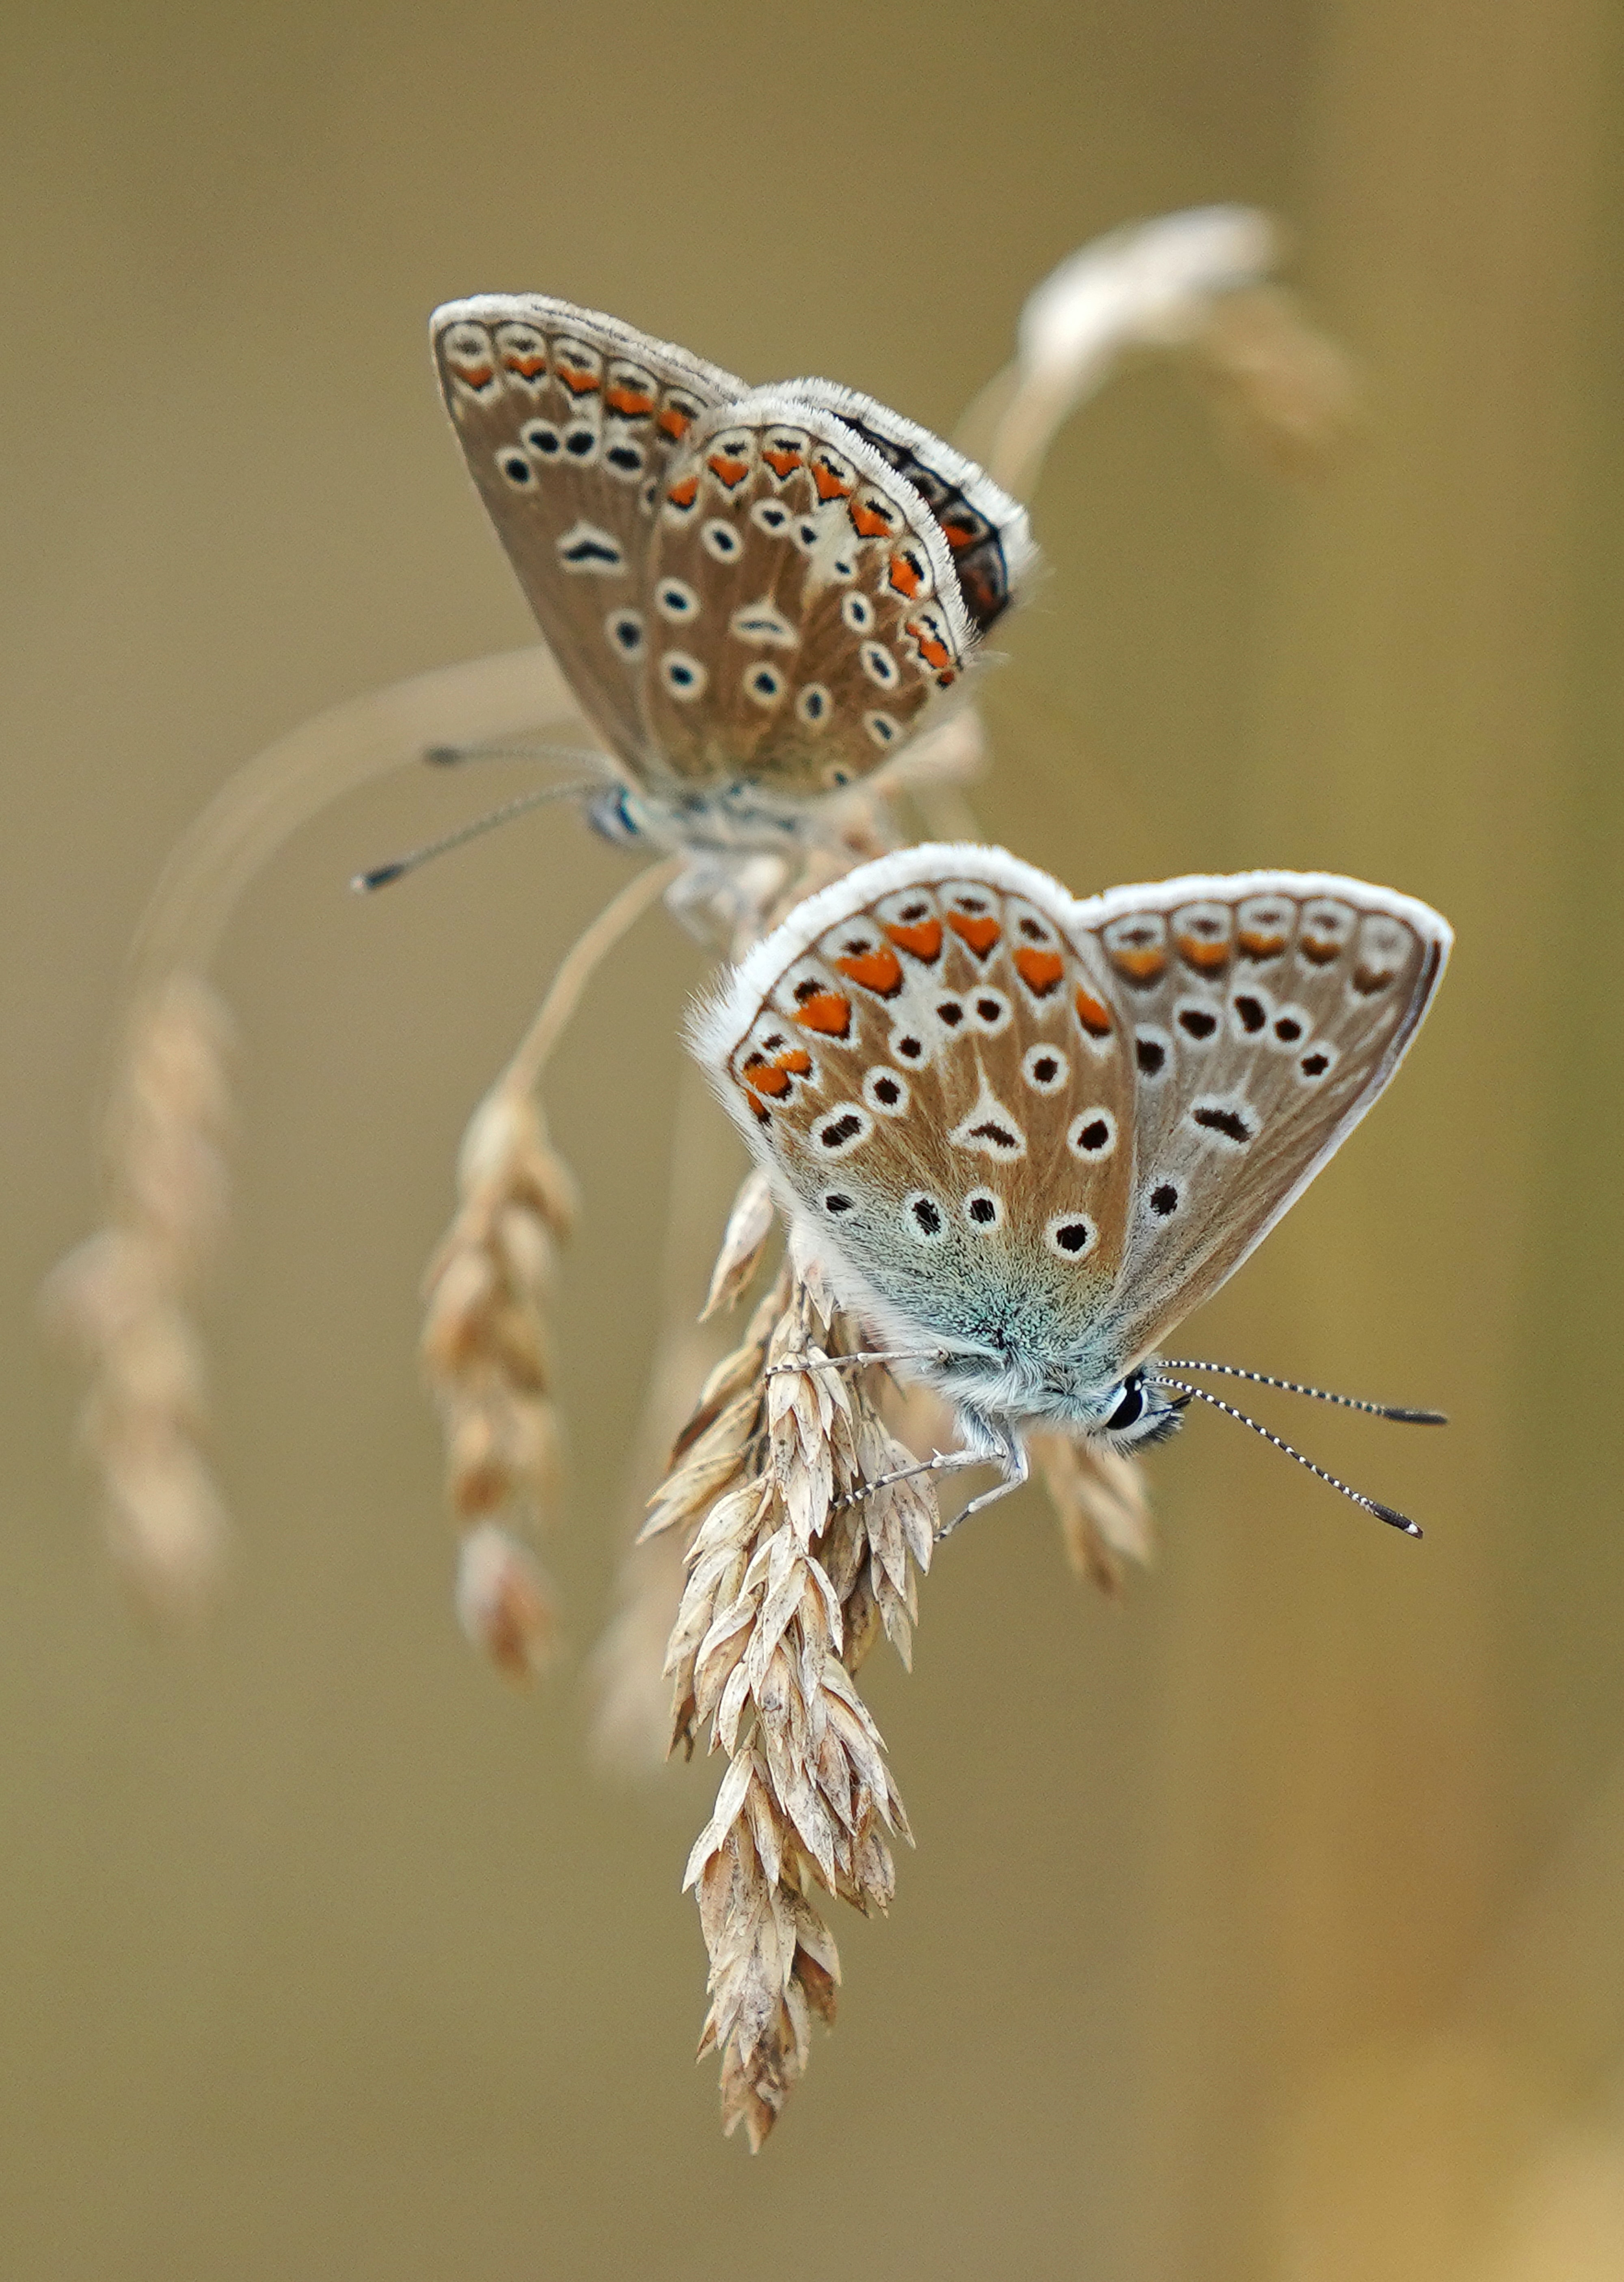 90449 download wallpaper Animals, Butterflies, Wings, Ears, Spikes, Macro screensavers and pictures for free